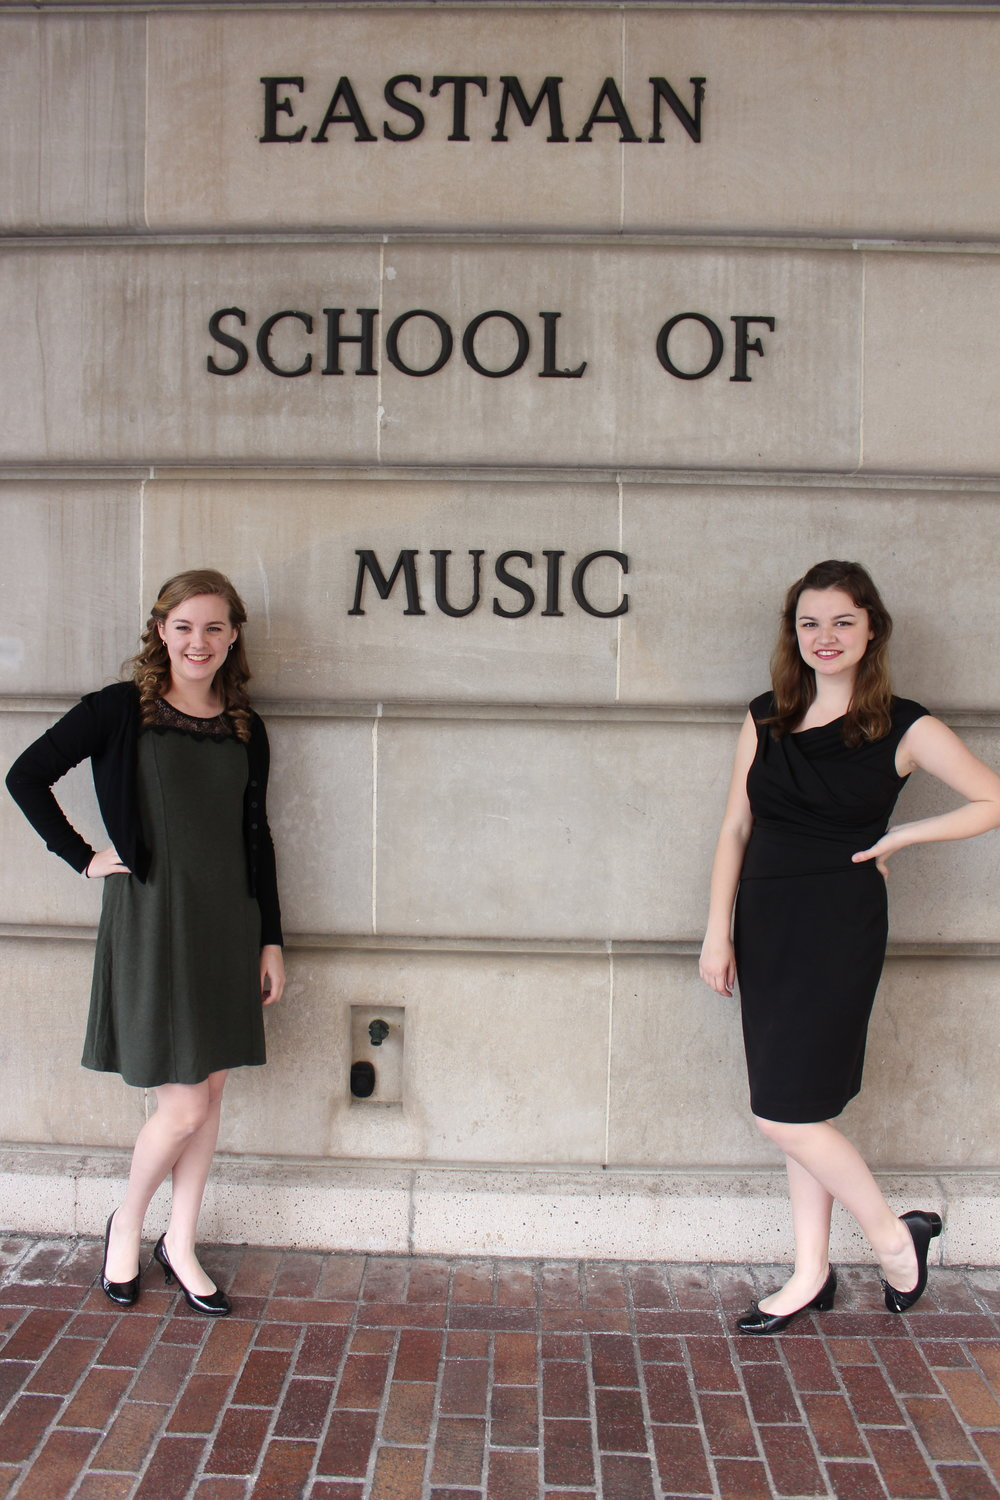 Here's a picture of me and one of my studio-mates/close friends after we finished our piano juries!